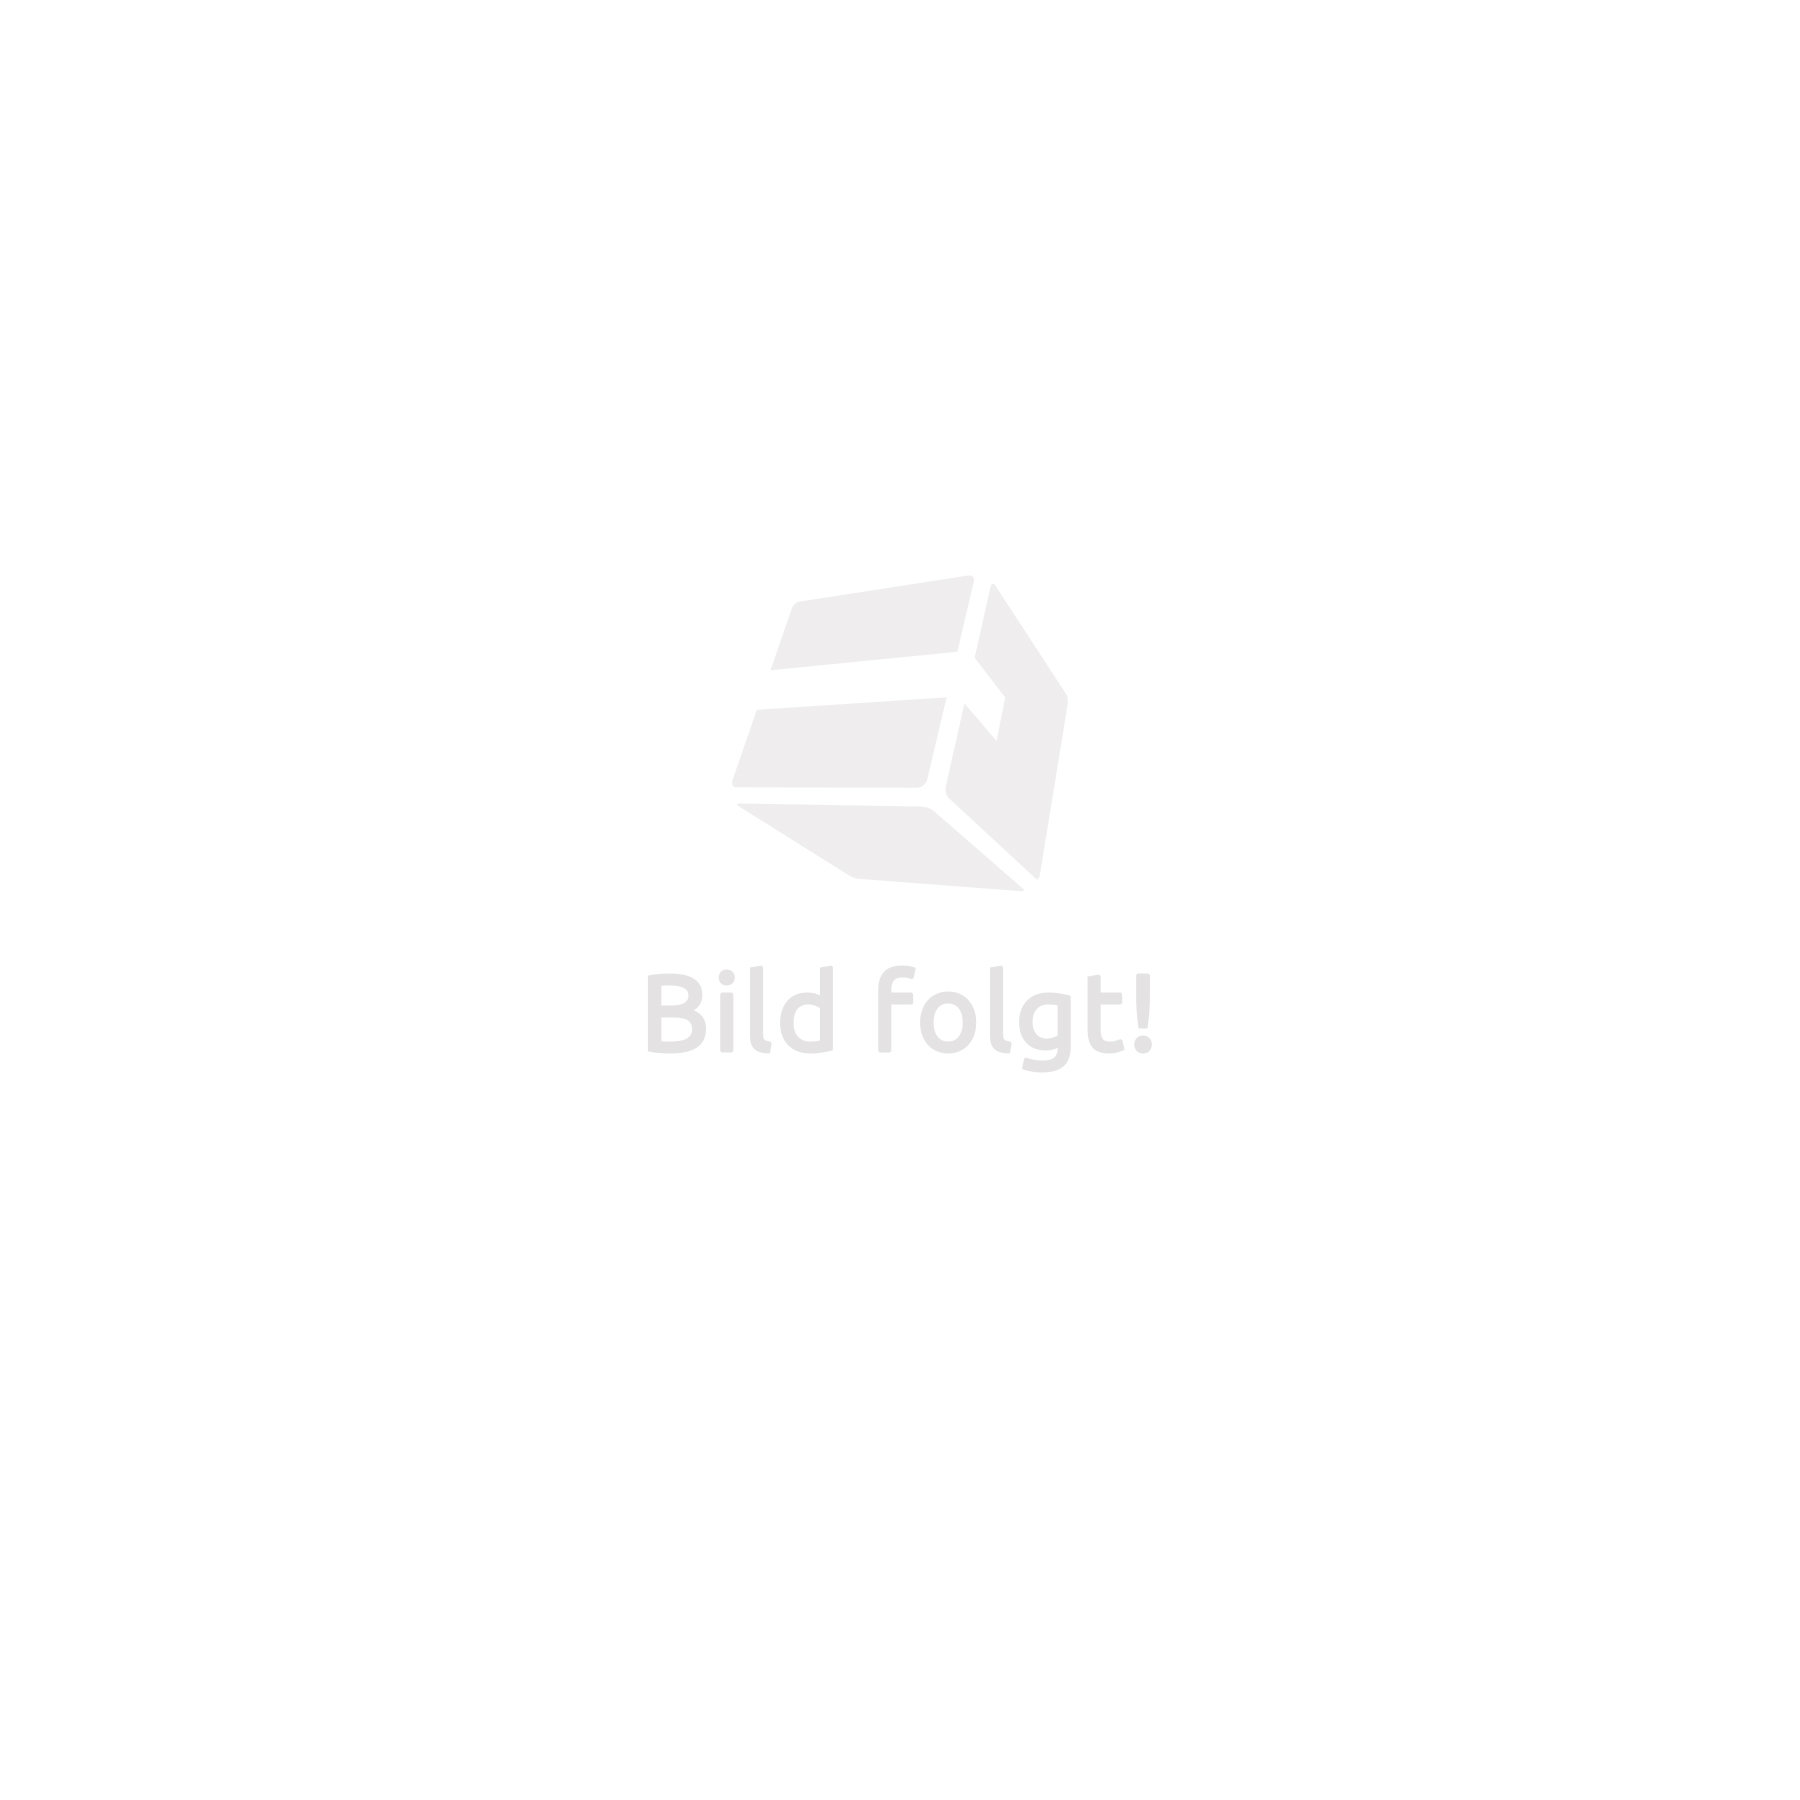 Chaise longue de jardin transat multi positions pliable for Chaise longue de jardin